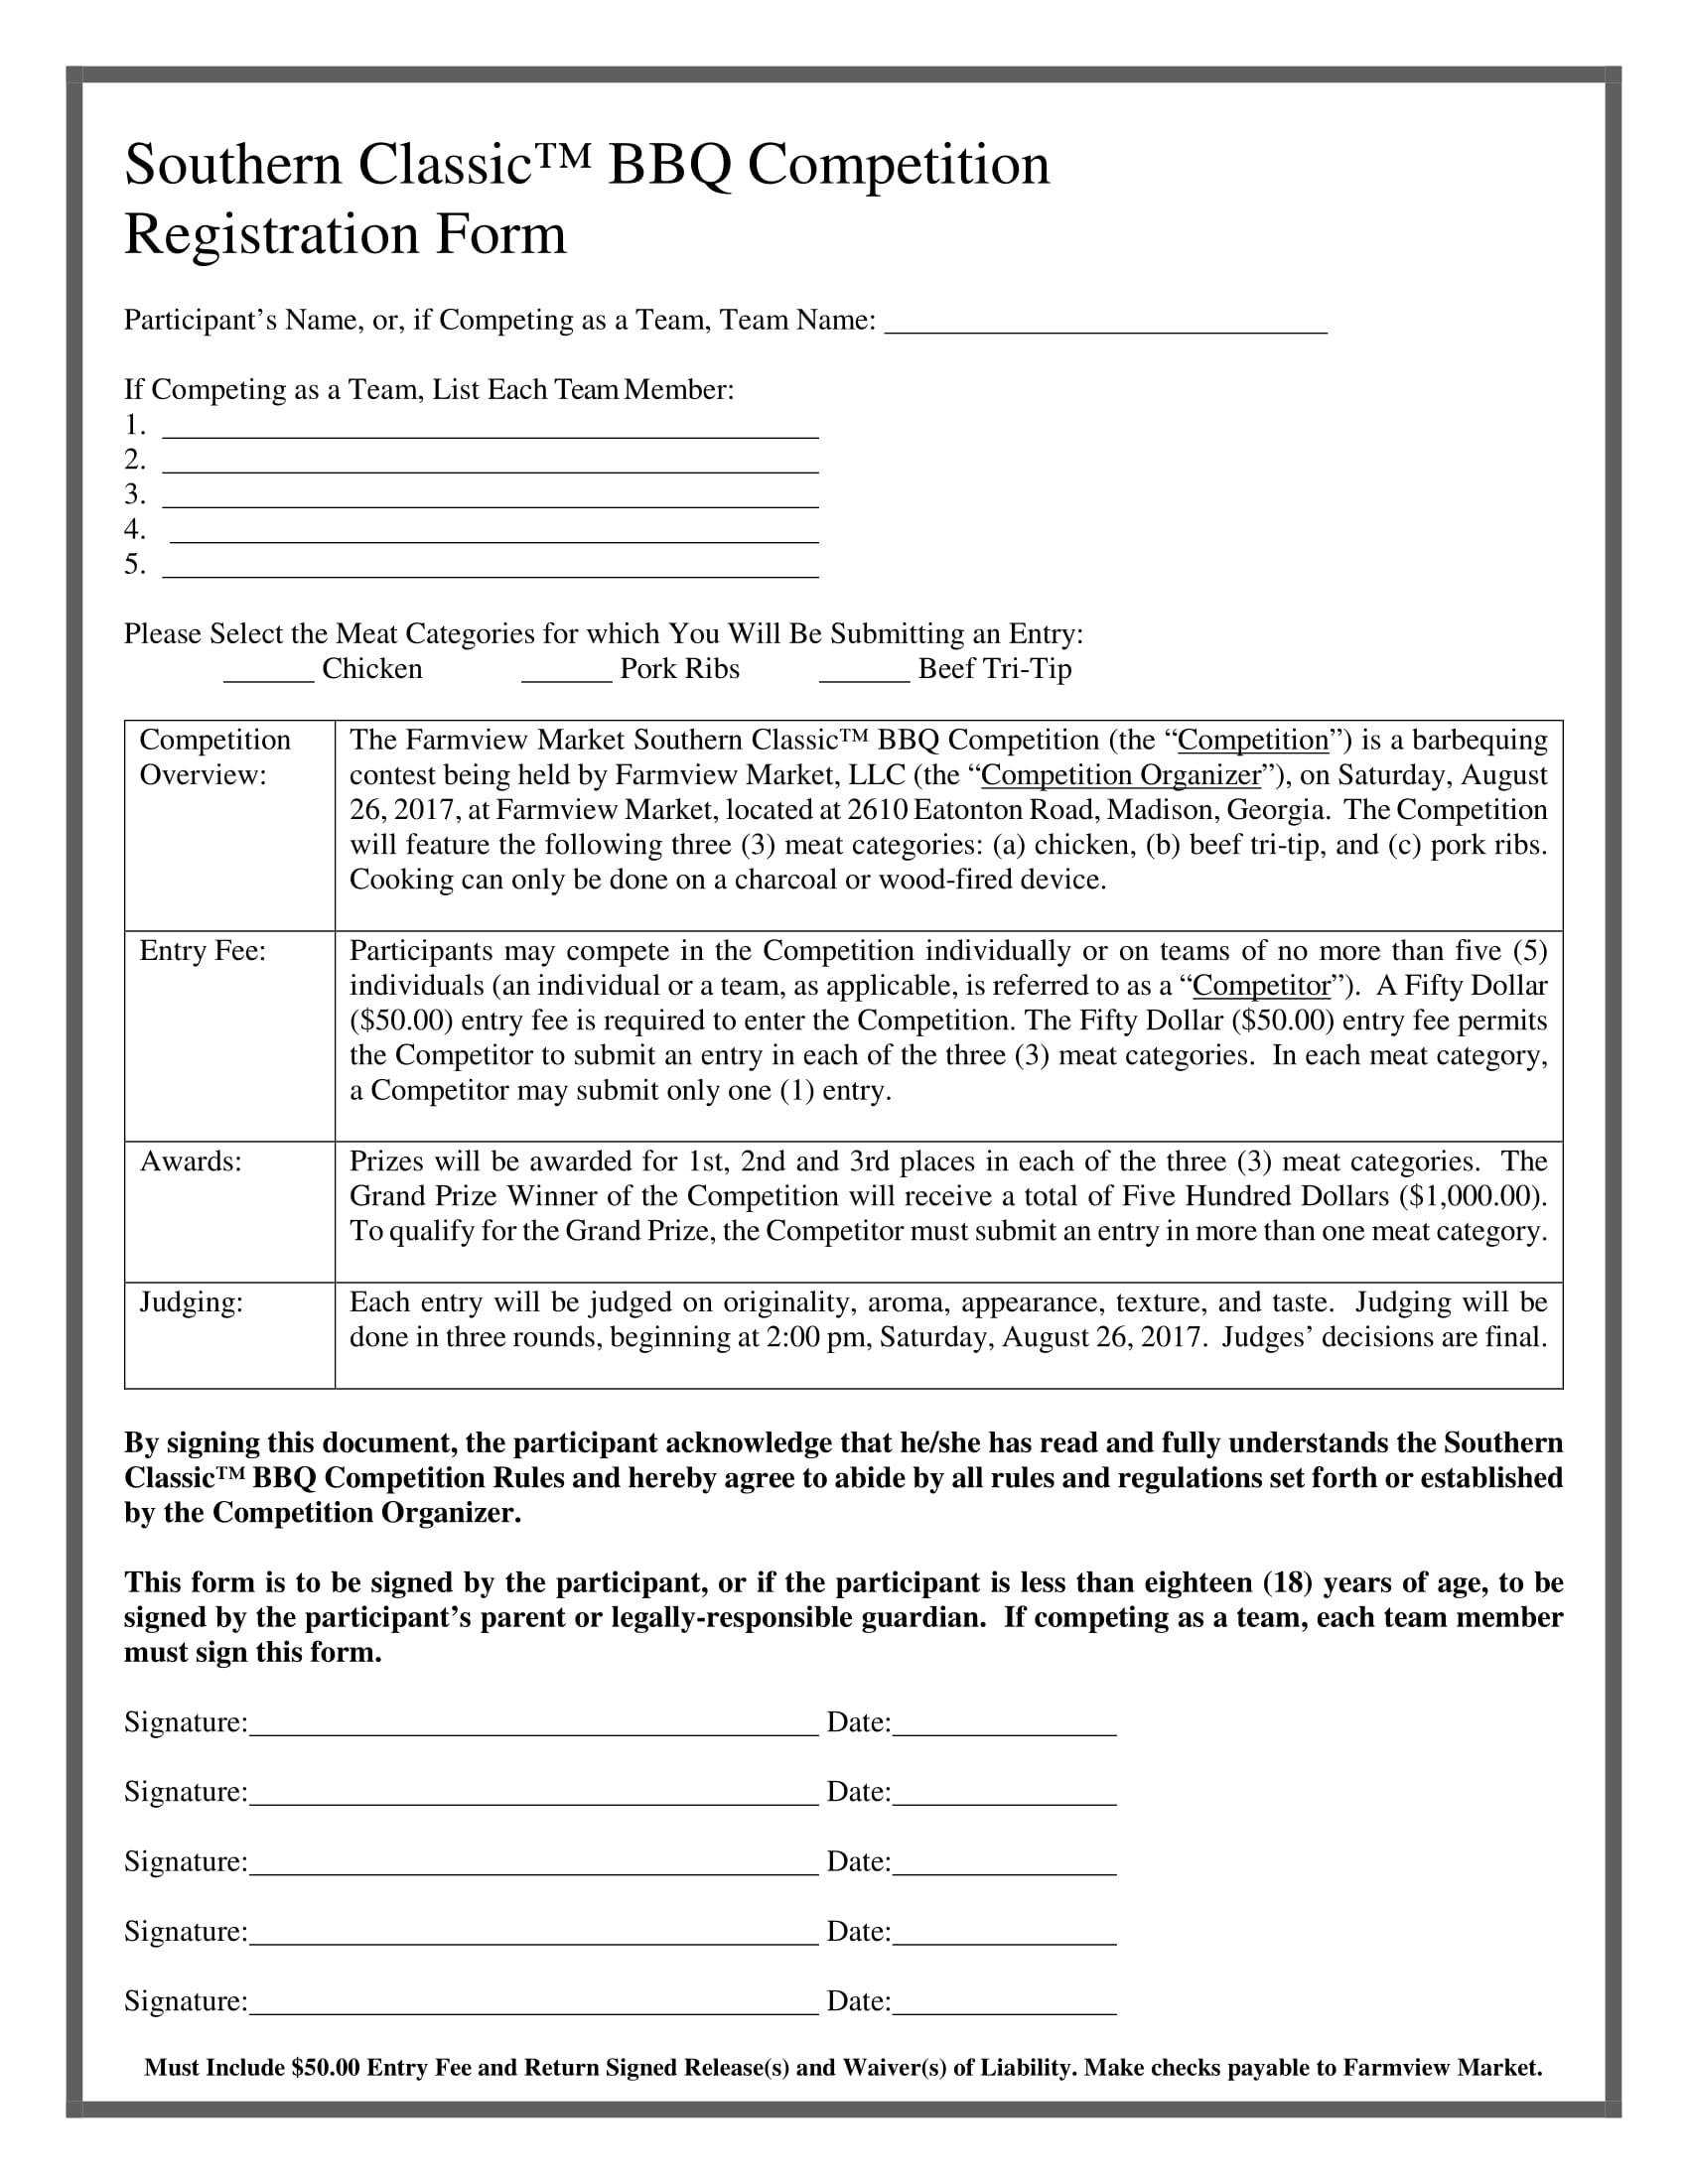 bbq competition registration form 1